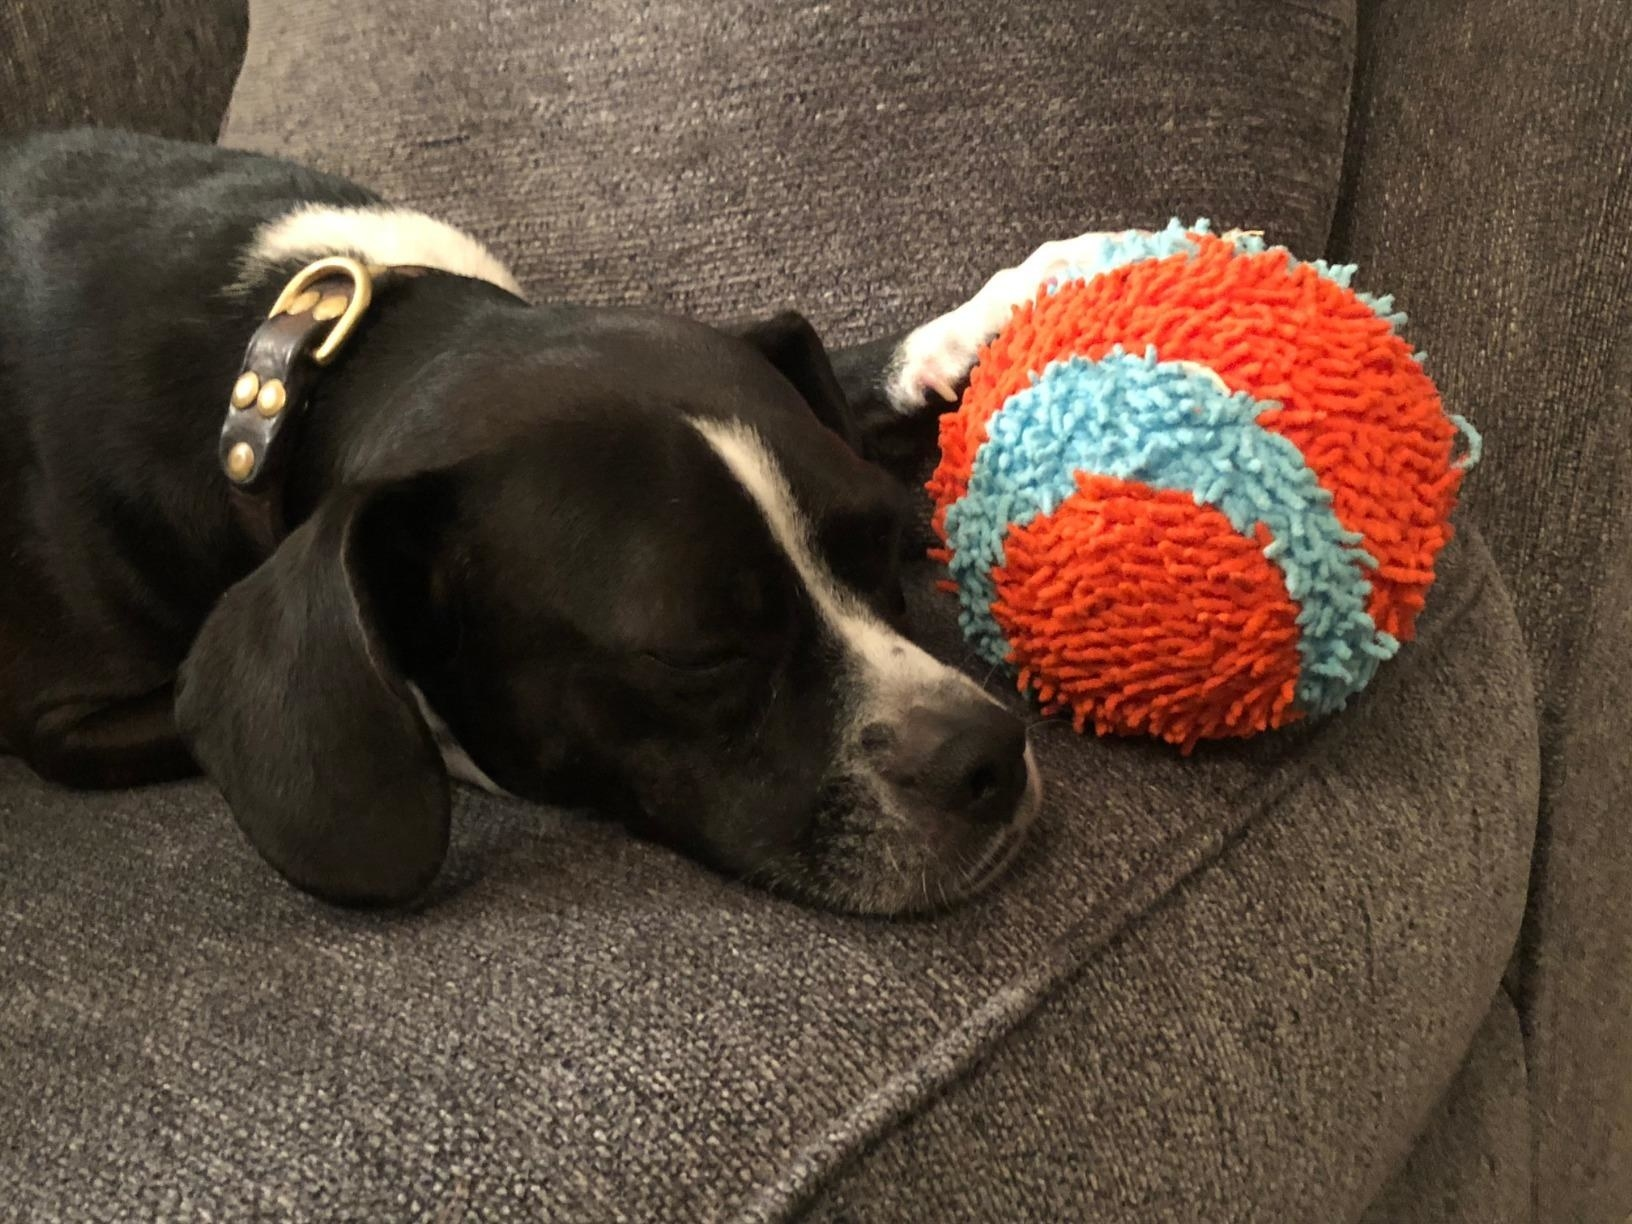 A dog with the ball, which is covered in soft, yarn-like threads